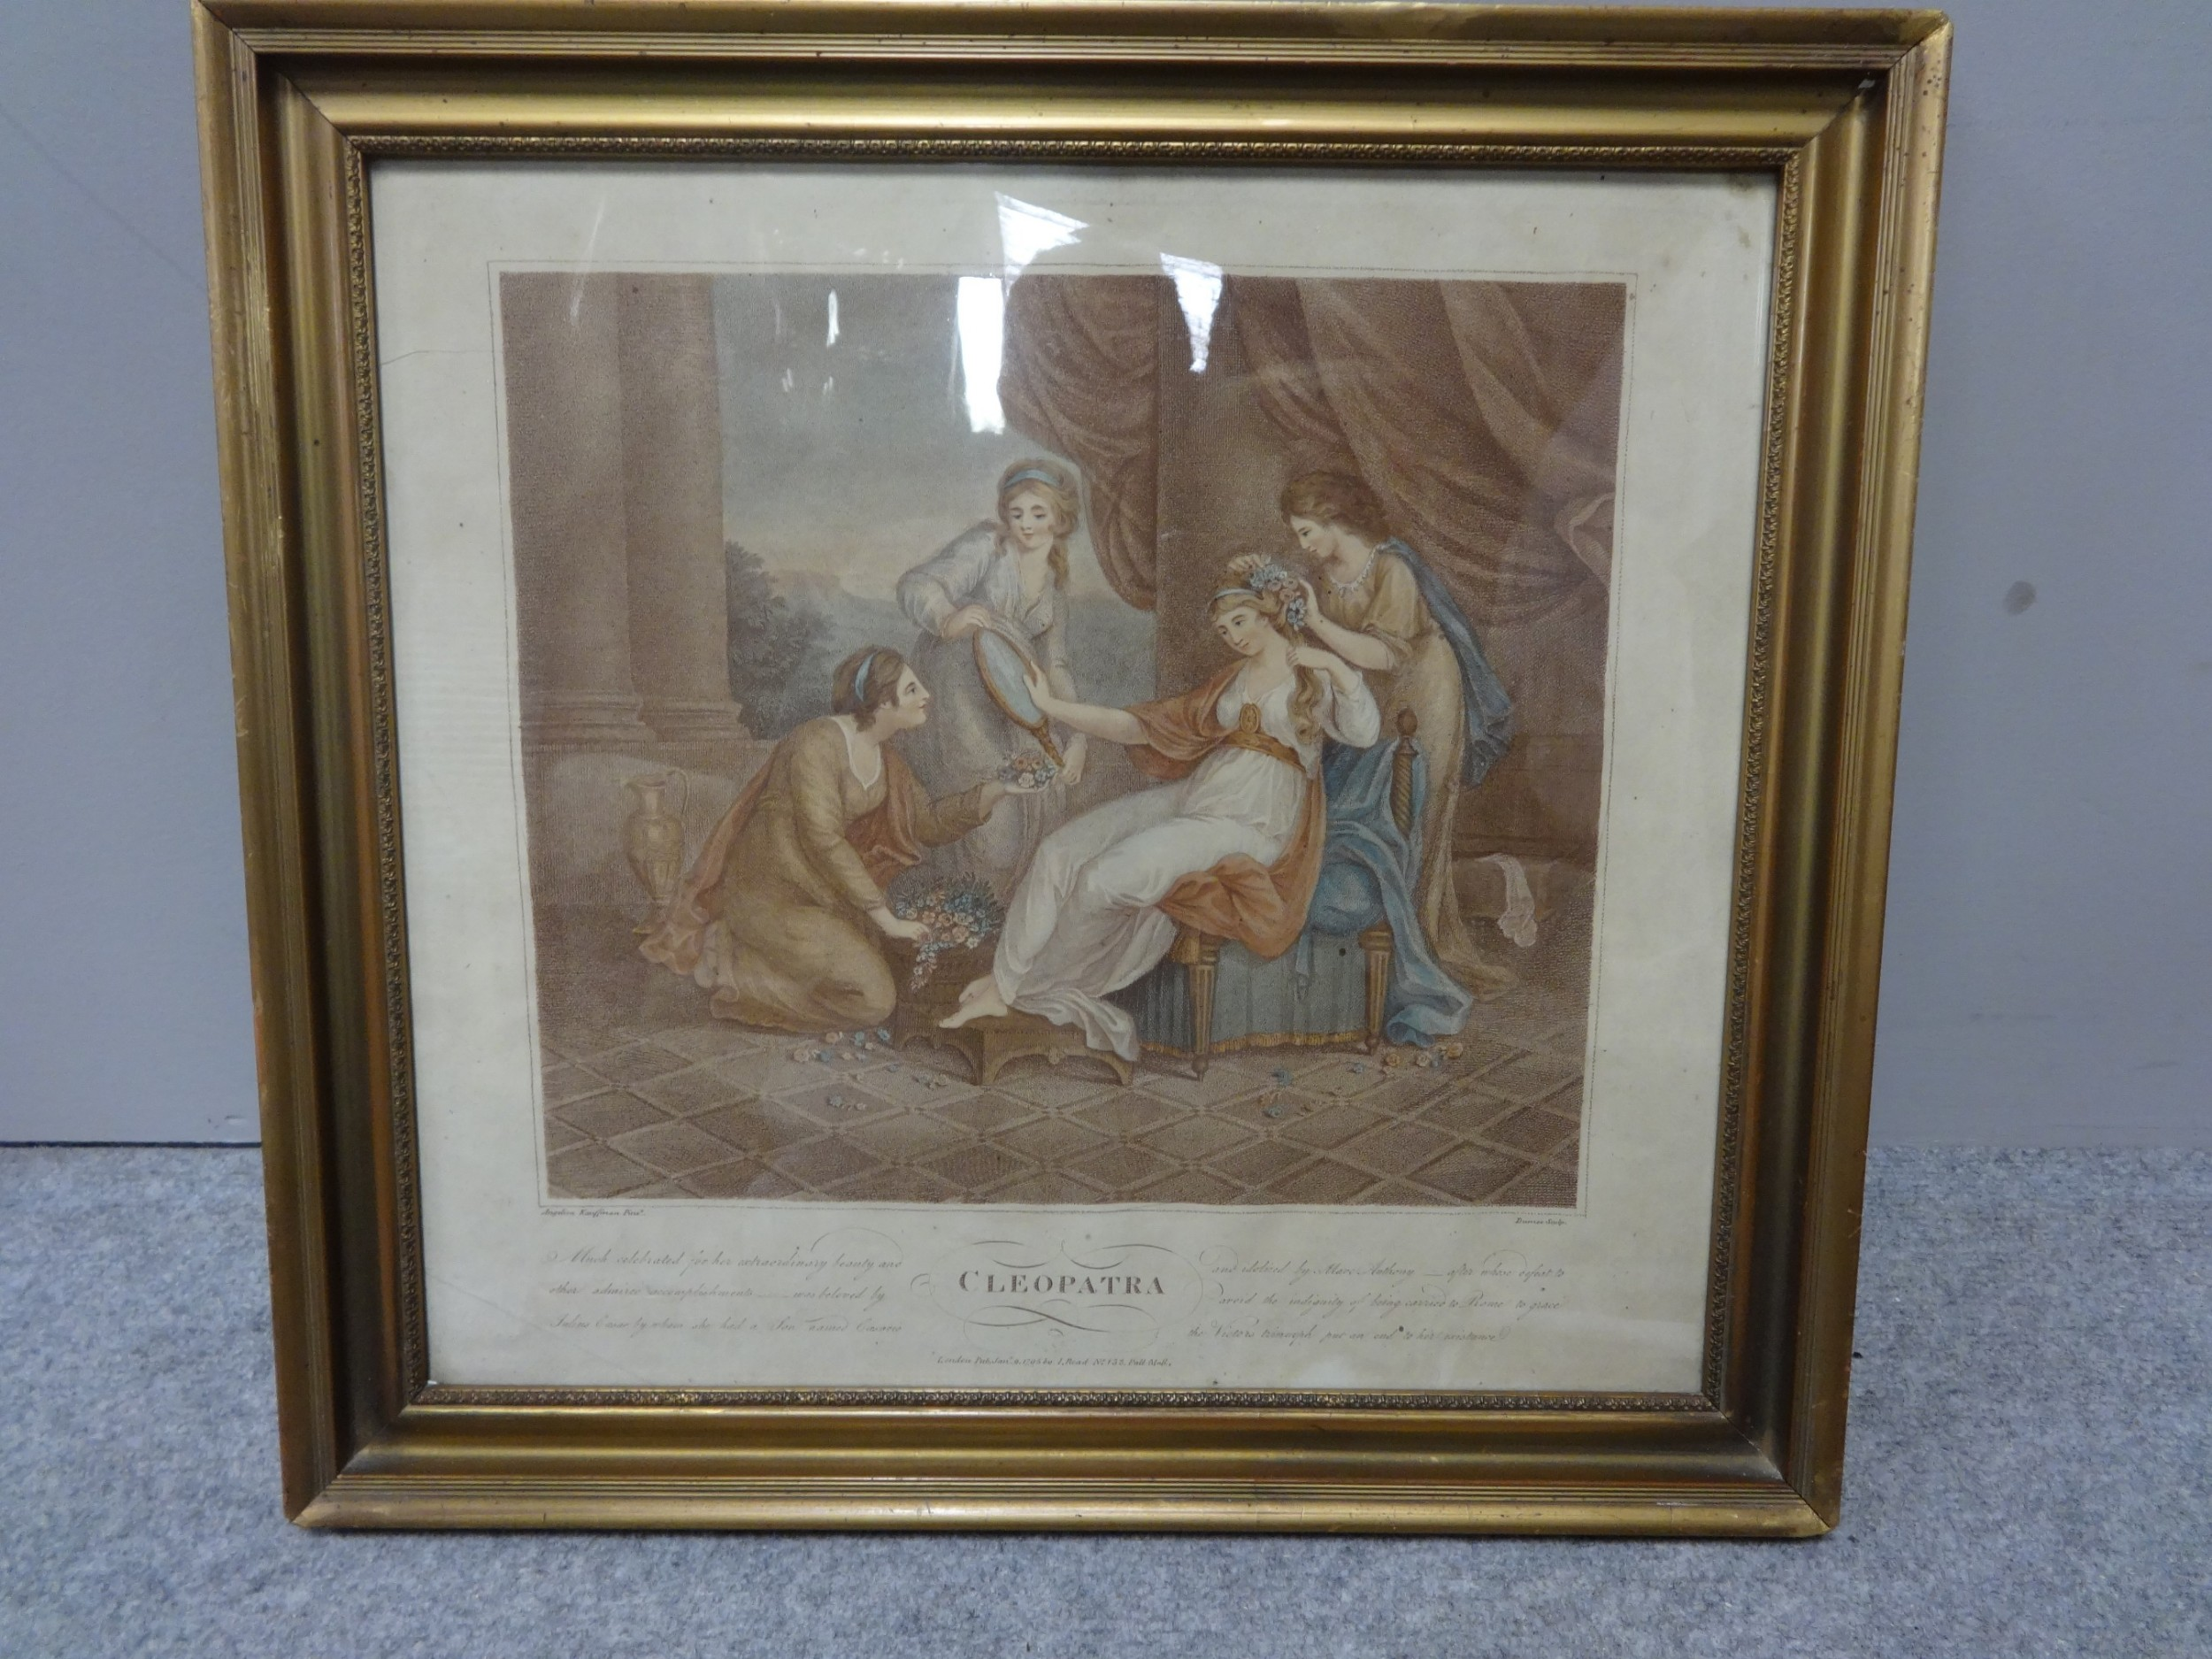 regency engraving 'cleopatra' by angelica kauffman